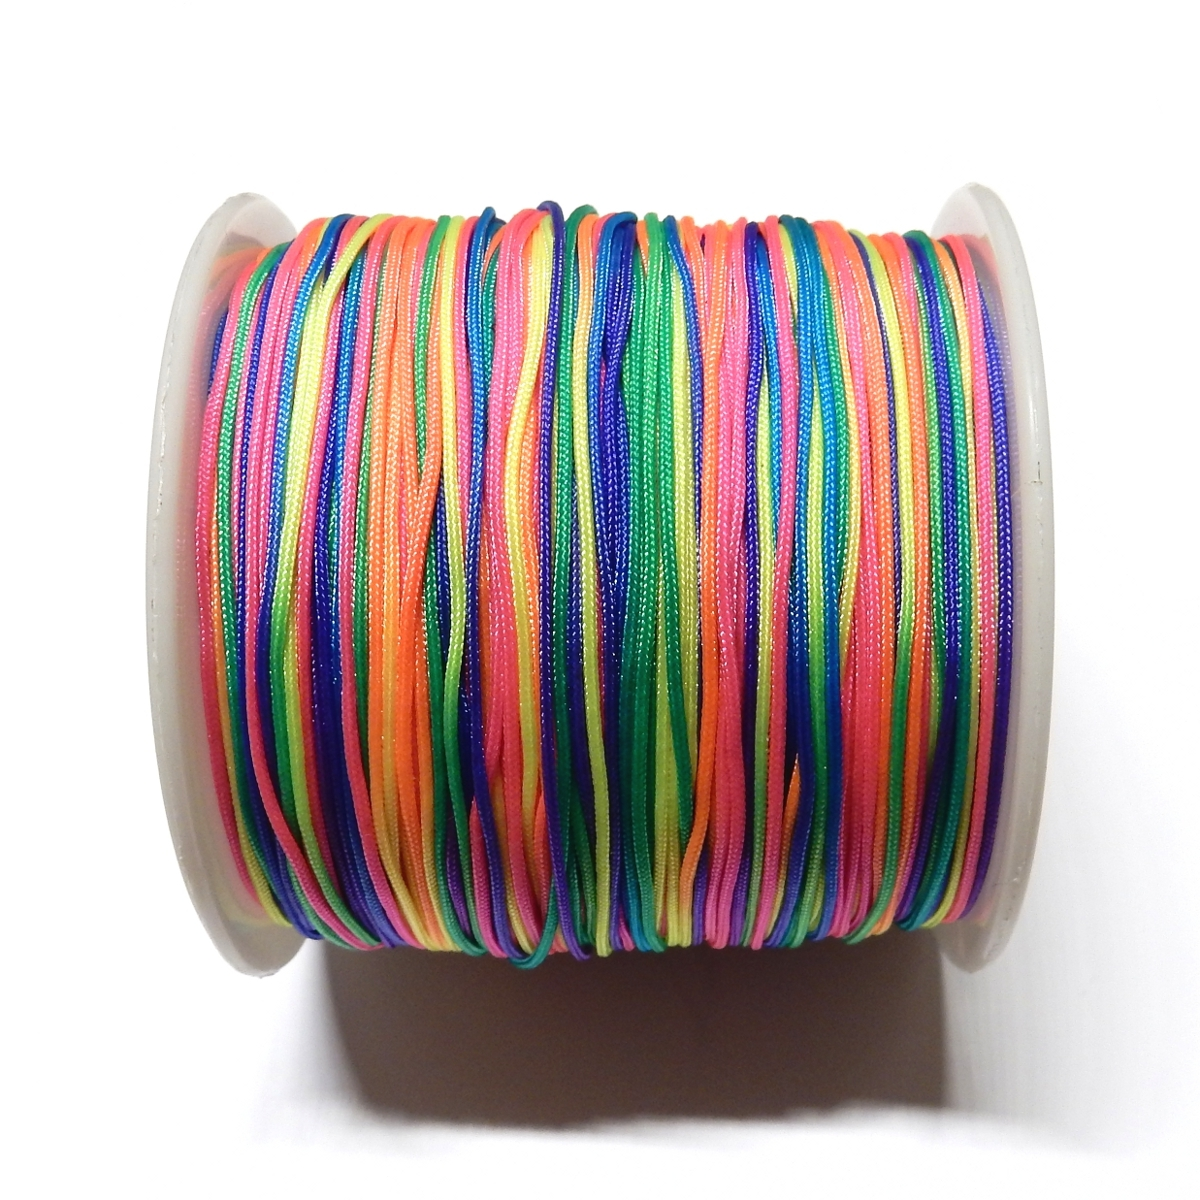 Cordon De Nylon 0.7mm - Multicolor 10